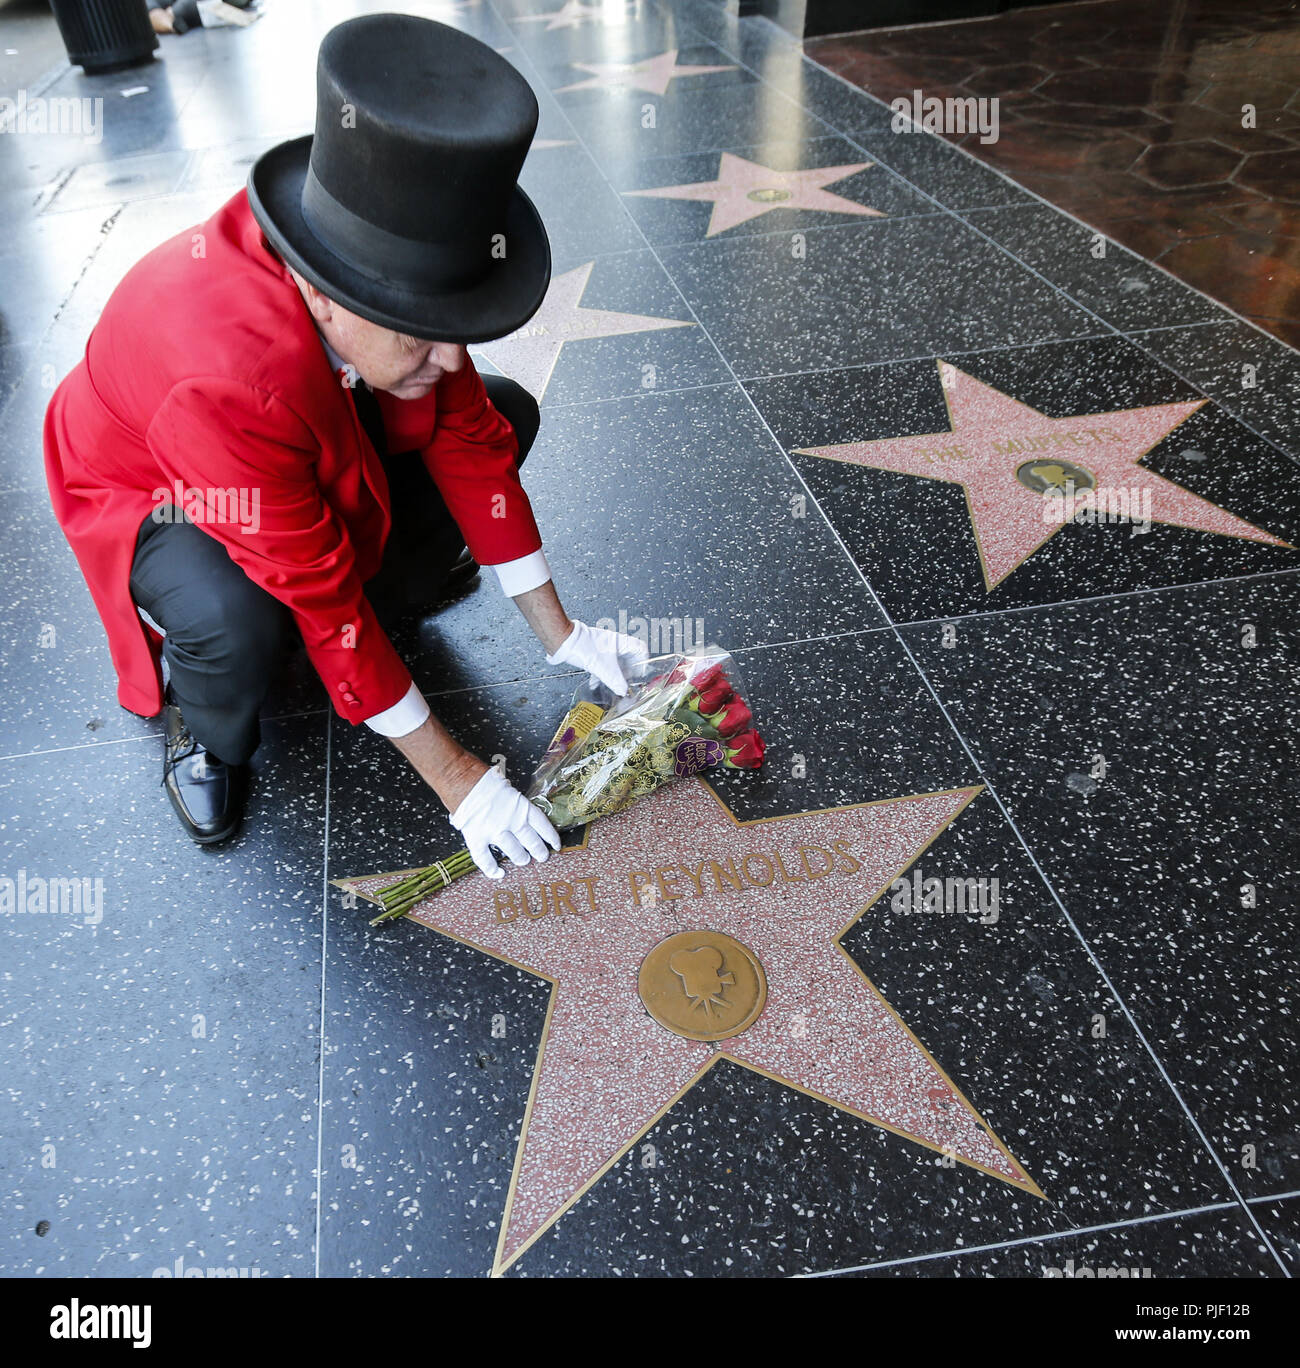 Los Angeles, California, USA. 6th Sep, 2018. Gregg Donovan places flowers on Burt Reynolds's star on the Hollywood Walk of Fame, in Los Angeles, Thursday Sept. 6, 2018. Reynolds died at Jupiter Medical Center in Florida at age 82. Credit: Ringo Chiu/ZUMA Wire/Alamy Live News - Stock Image